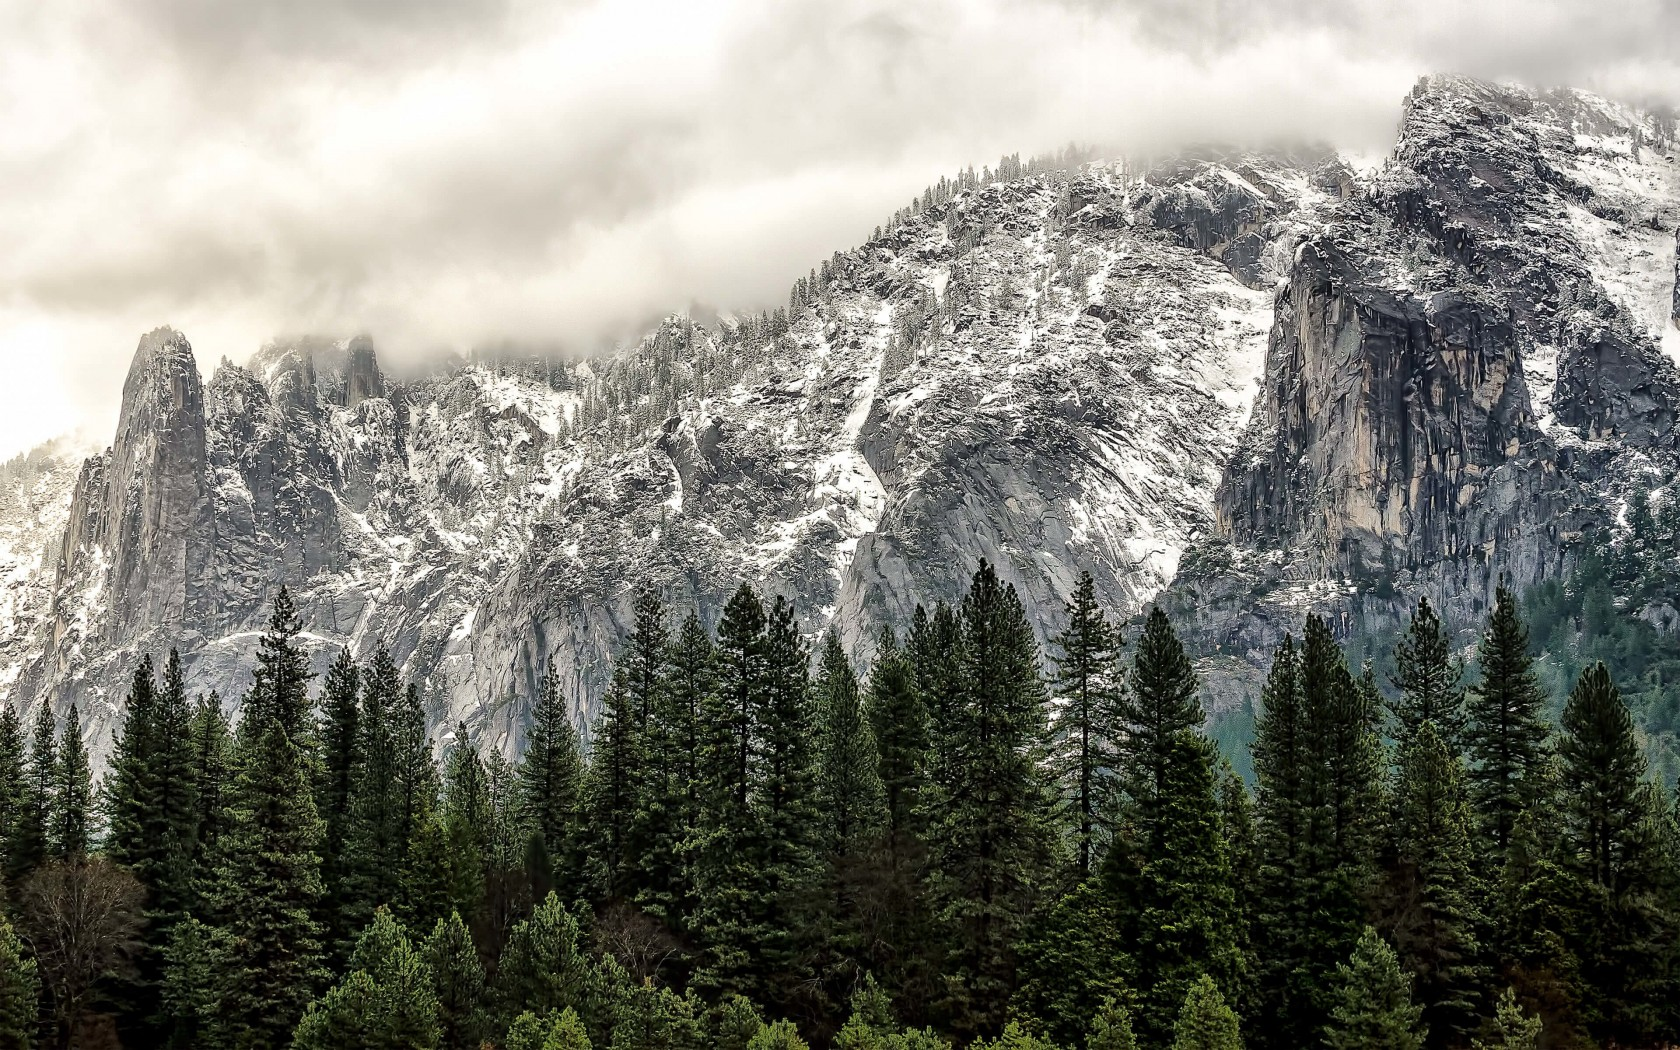 Winter Day at Yosemite National Park Wallpaper for Desktop 1680x1050